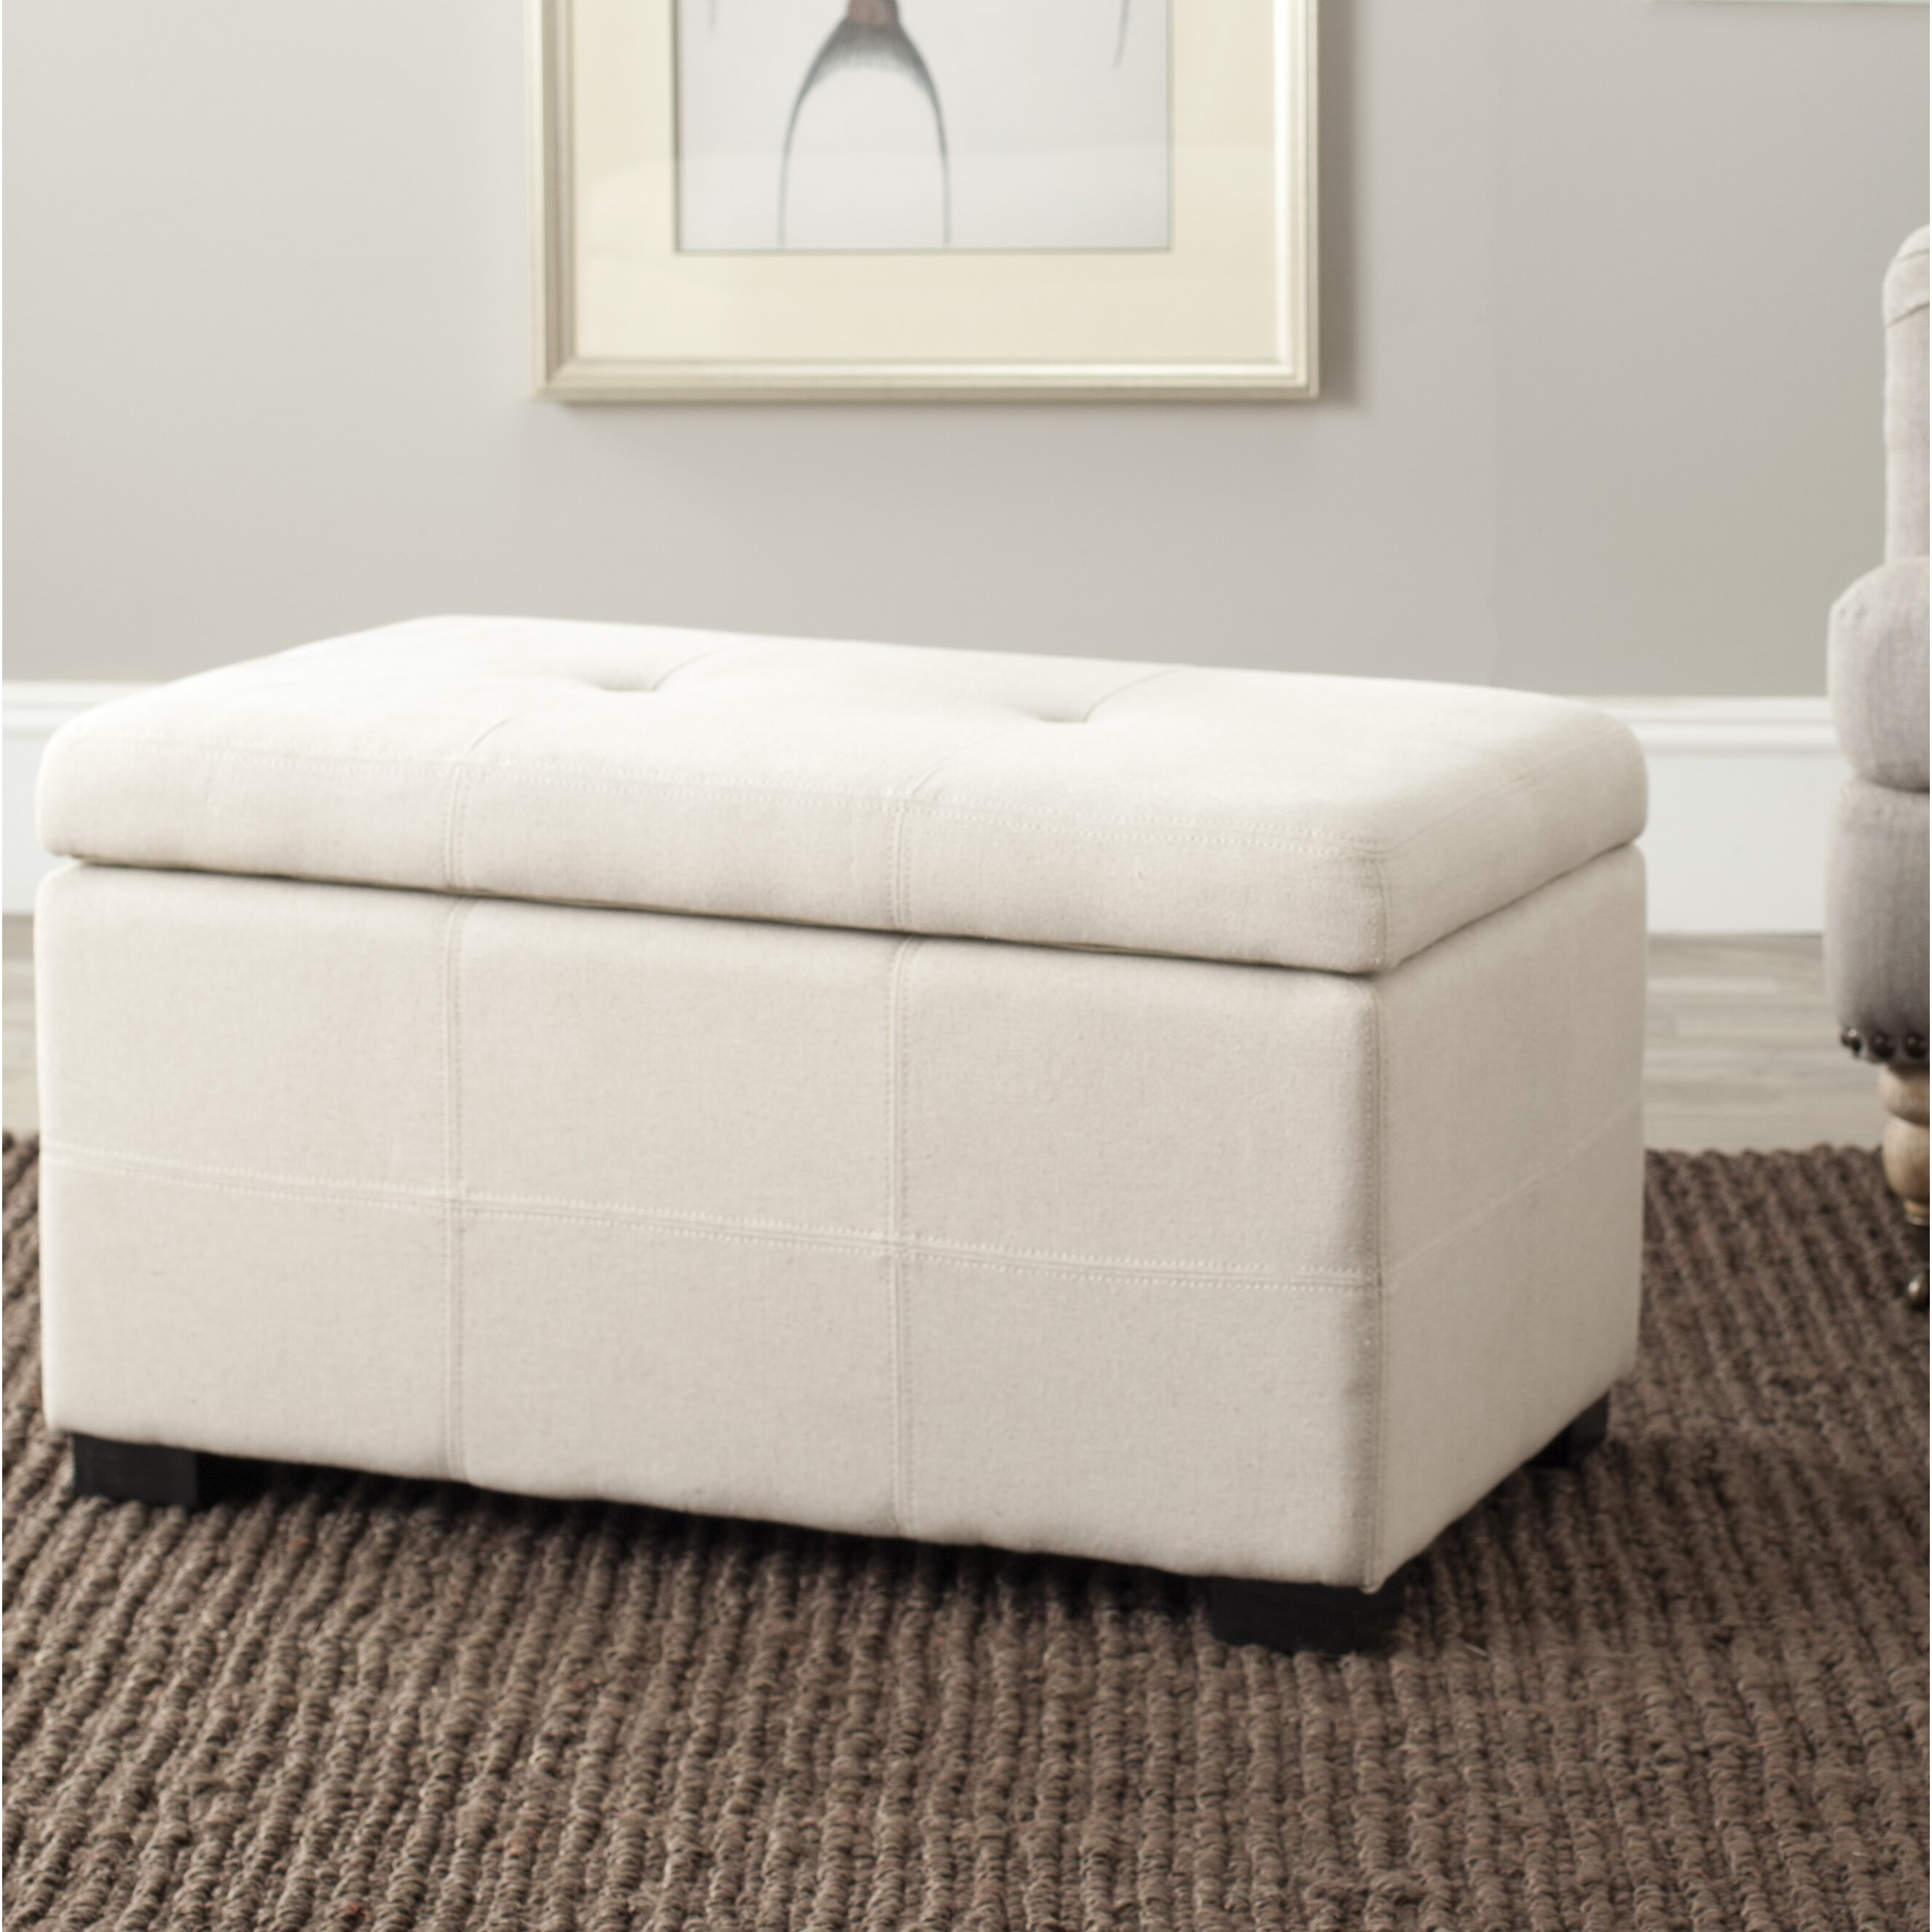 Mercury Row Tufted Beige Linen Storage Bedroom Bench Reviews Wayfair